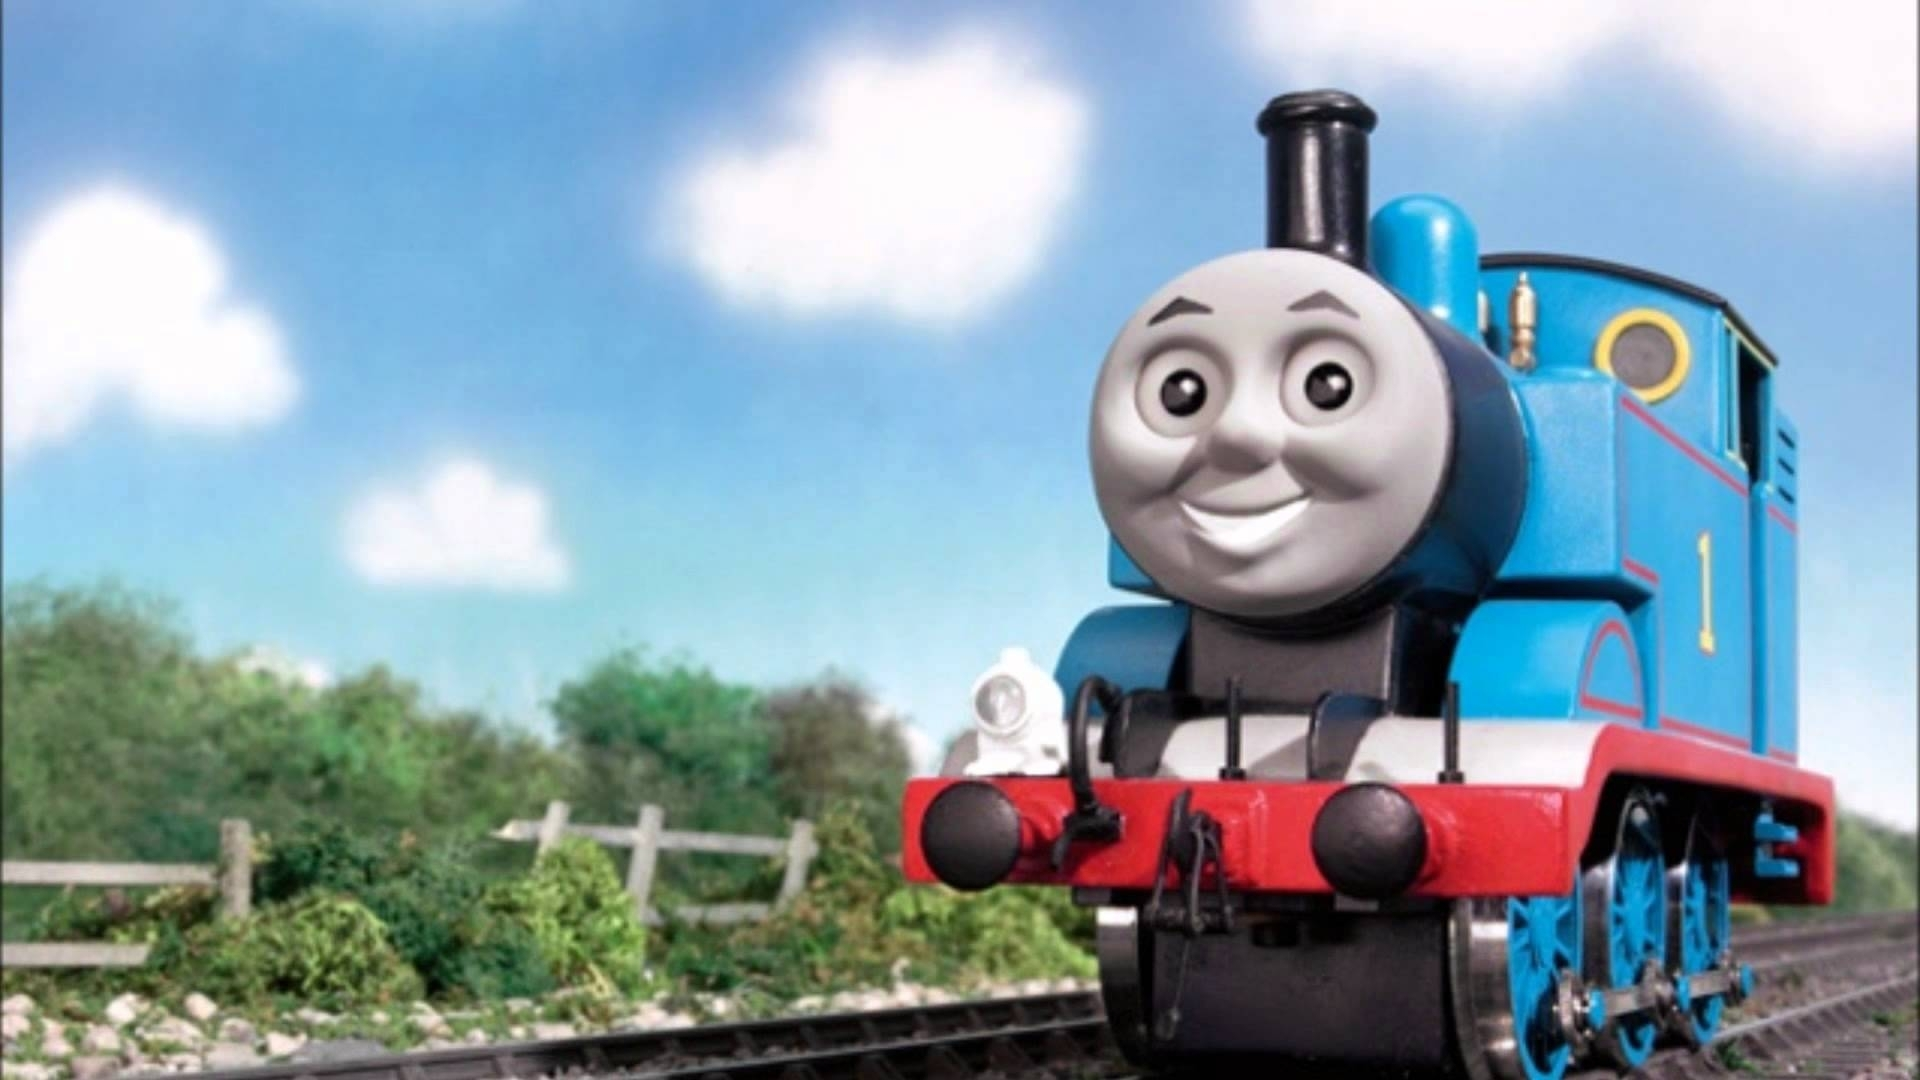 thomas the tank engine wallpapers - wallpaper cave